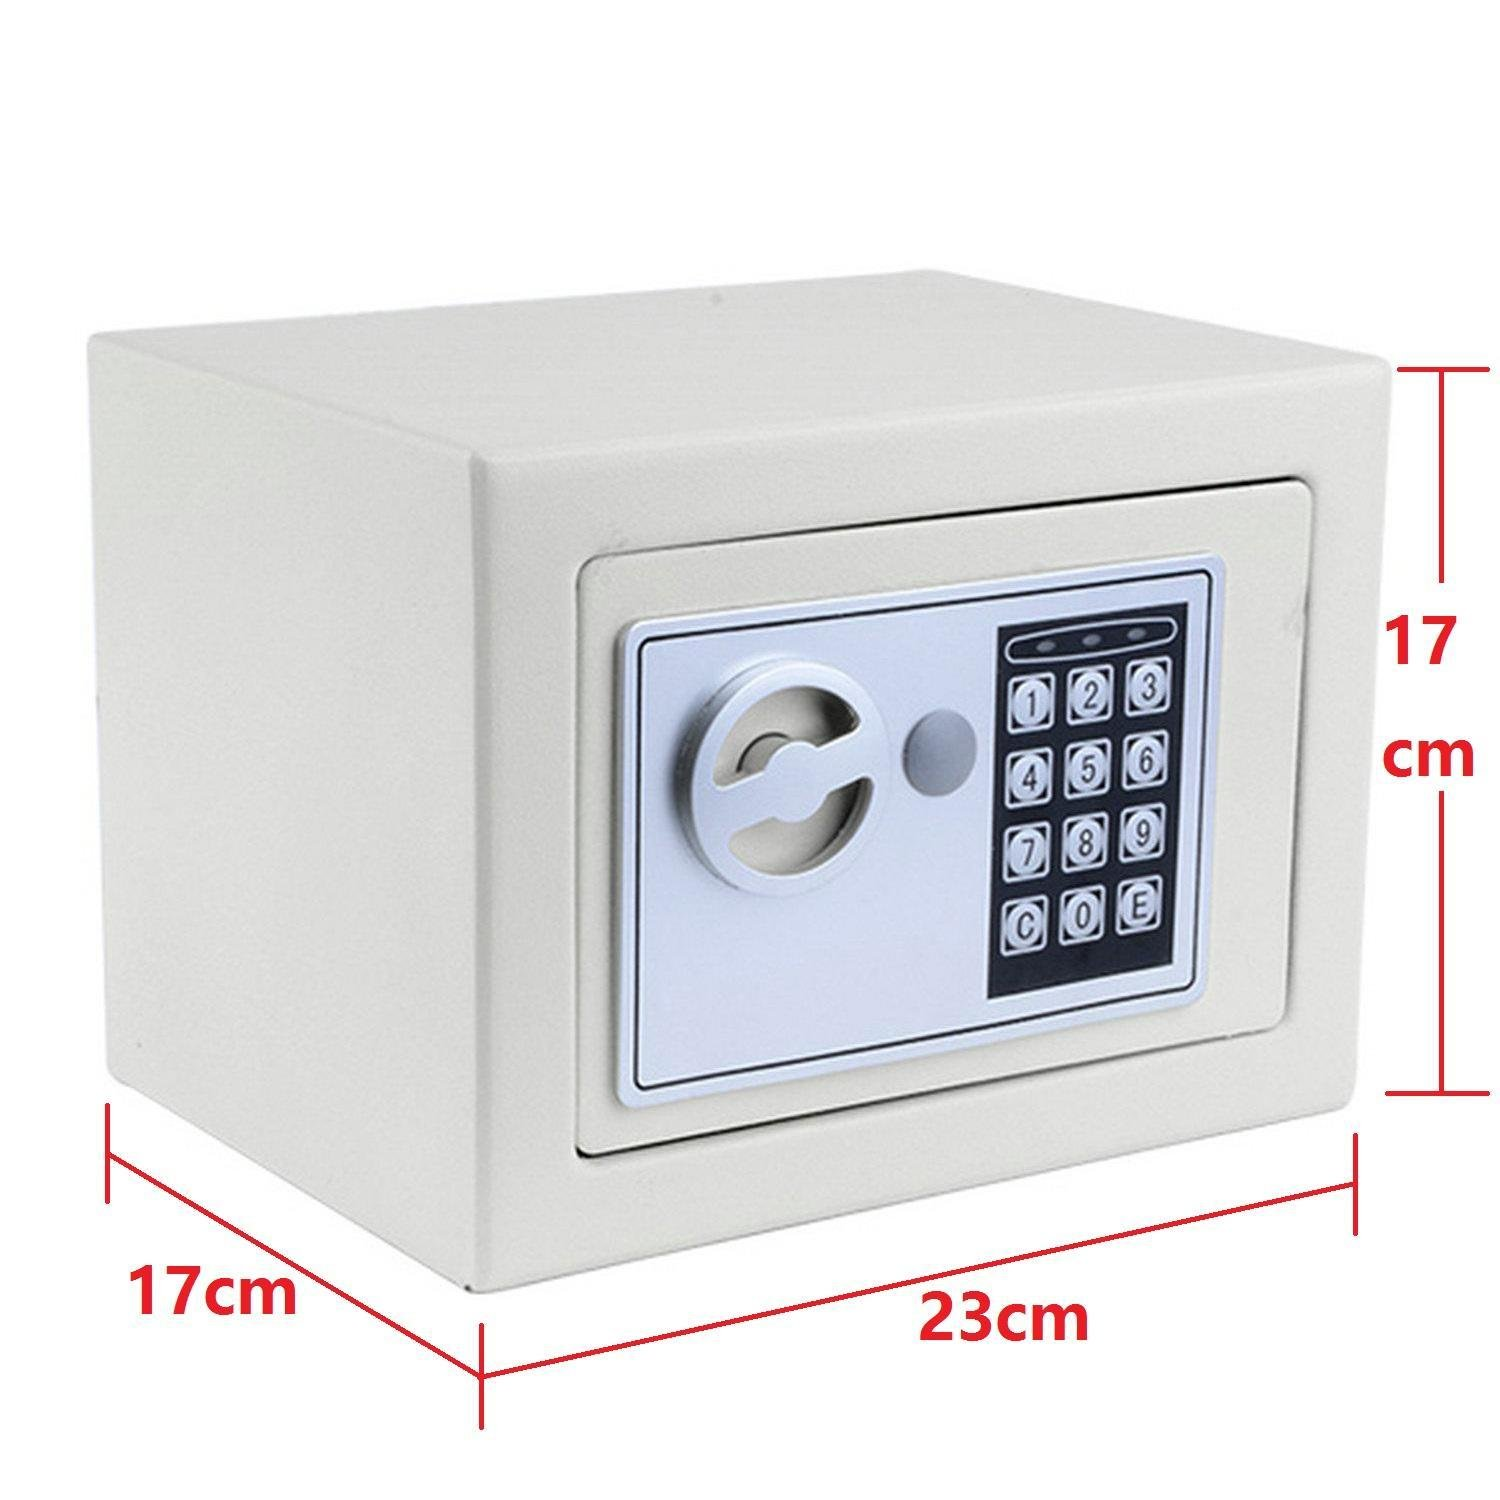 Solid Steel Security Digital Electronic Safe Box with Deadbolt Lock Wall-Anchoring Design for Jewelry, Gun, Cash Valuable, 8.9'' X 6.5'' X 6.5'' White